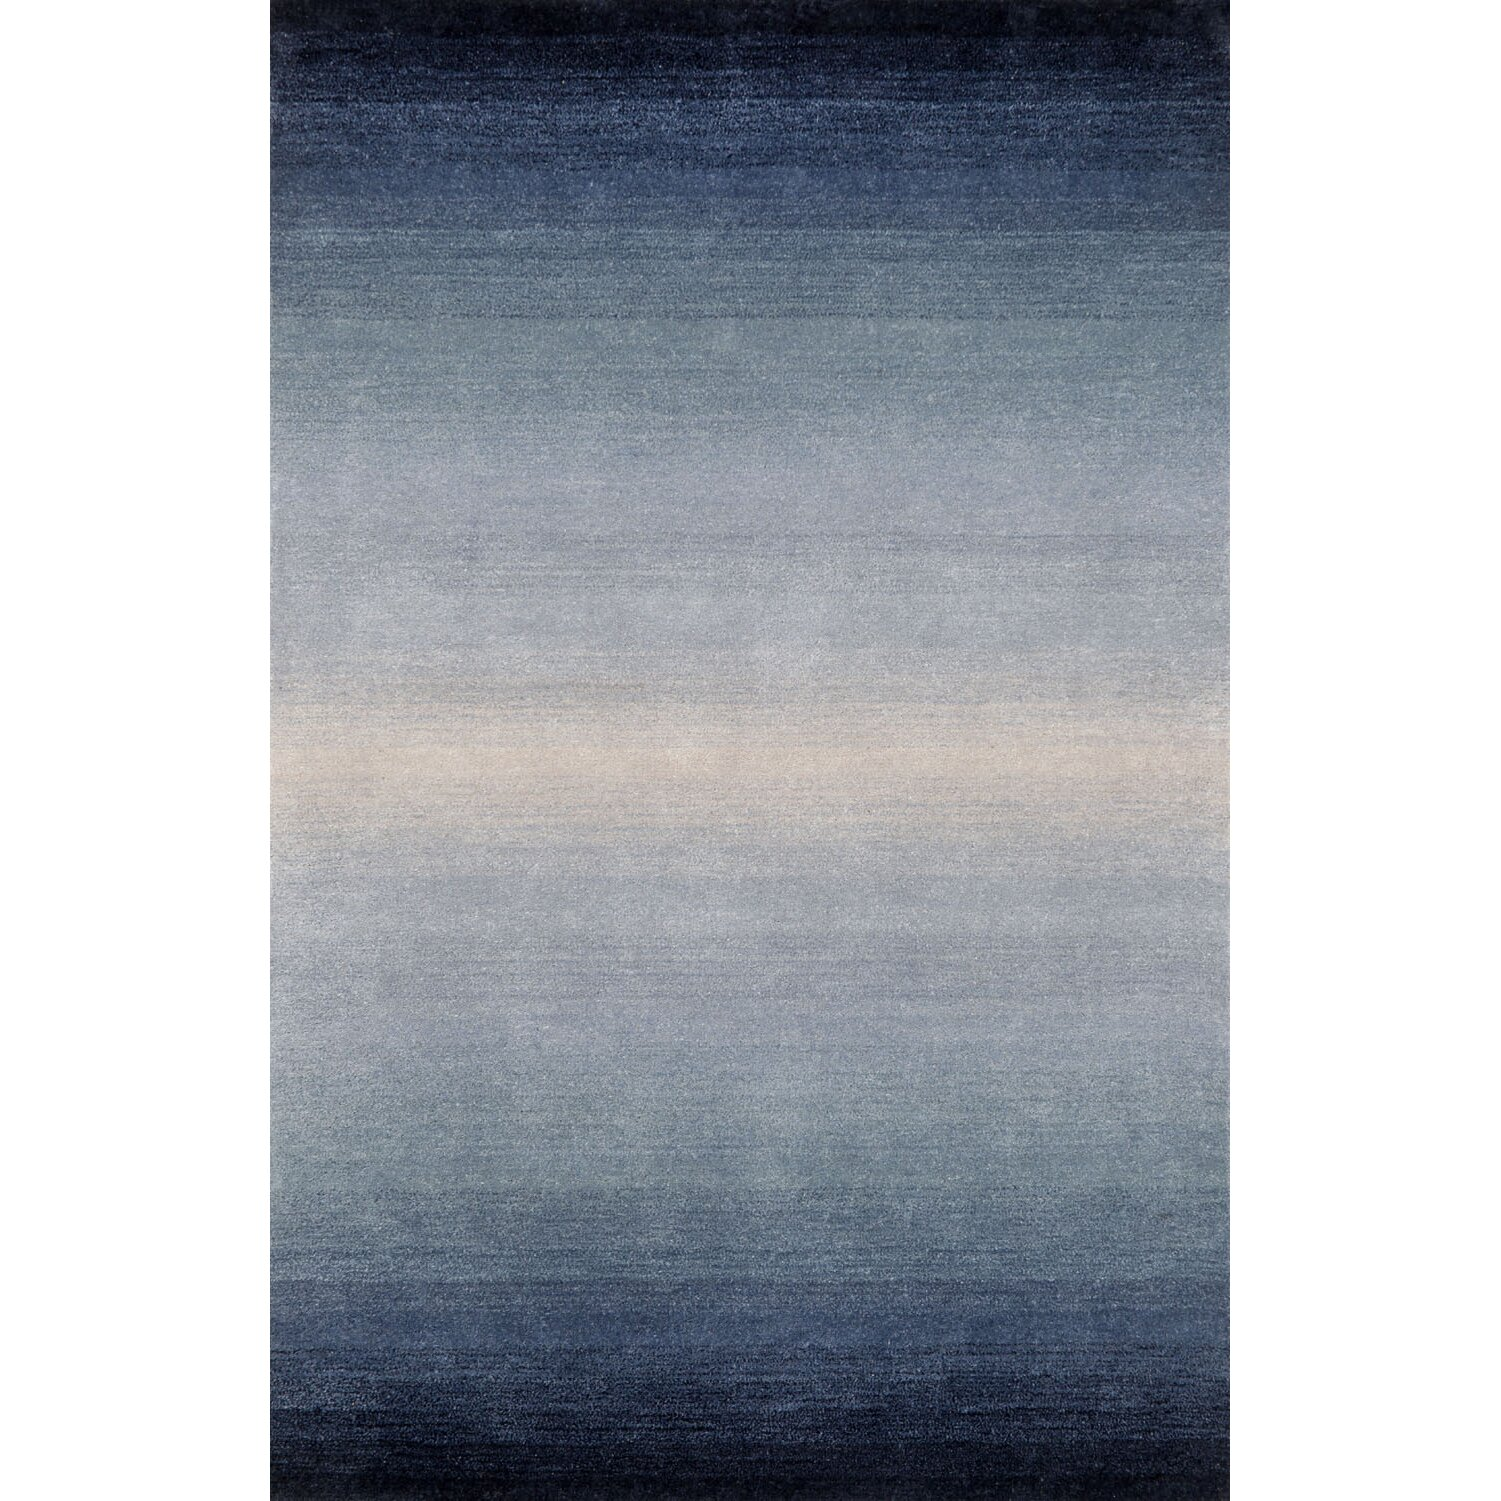 Liora Manne Ombre Blue Denim Horizon Area Rug Amp Reviews